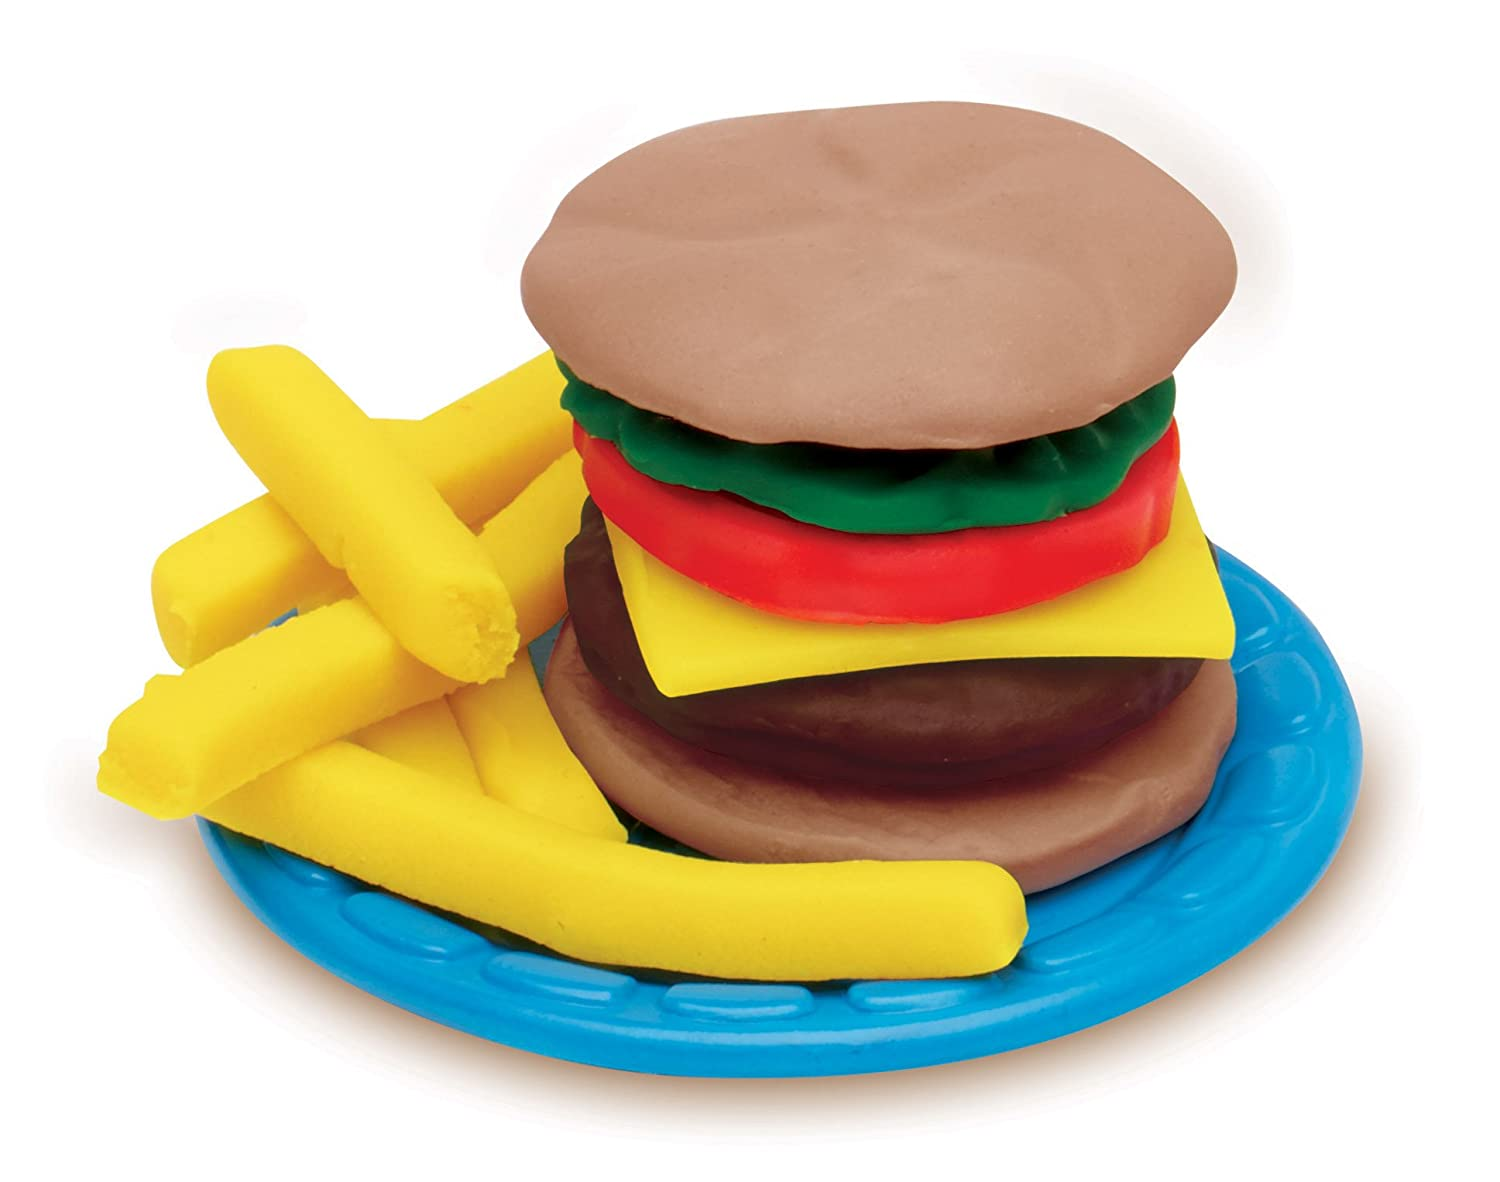 Top Play-Doh B5521EU4 - Burger Set, Multicolore: Play-Doh: Amazon.it  VC64